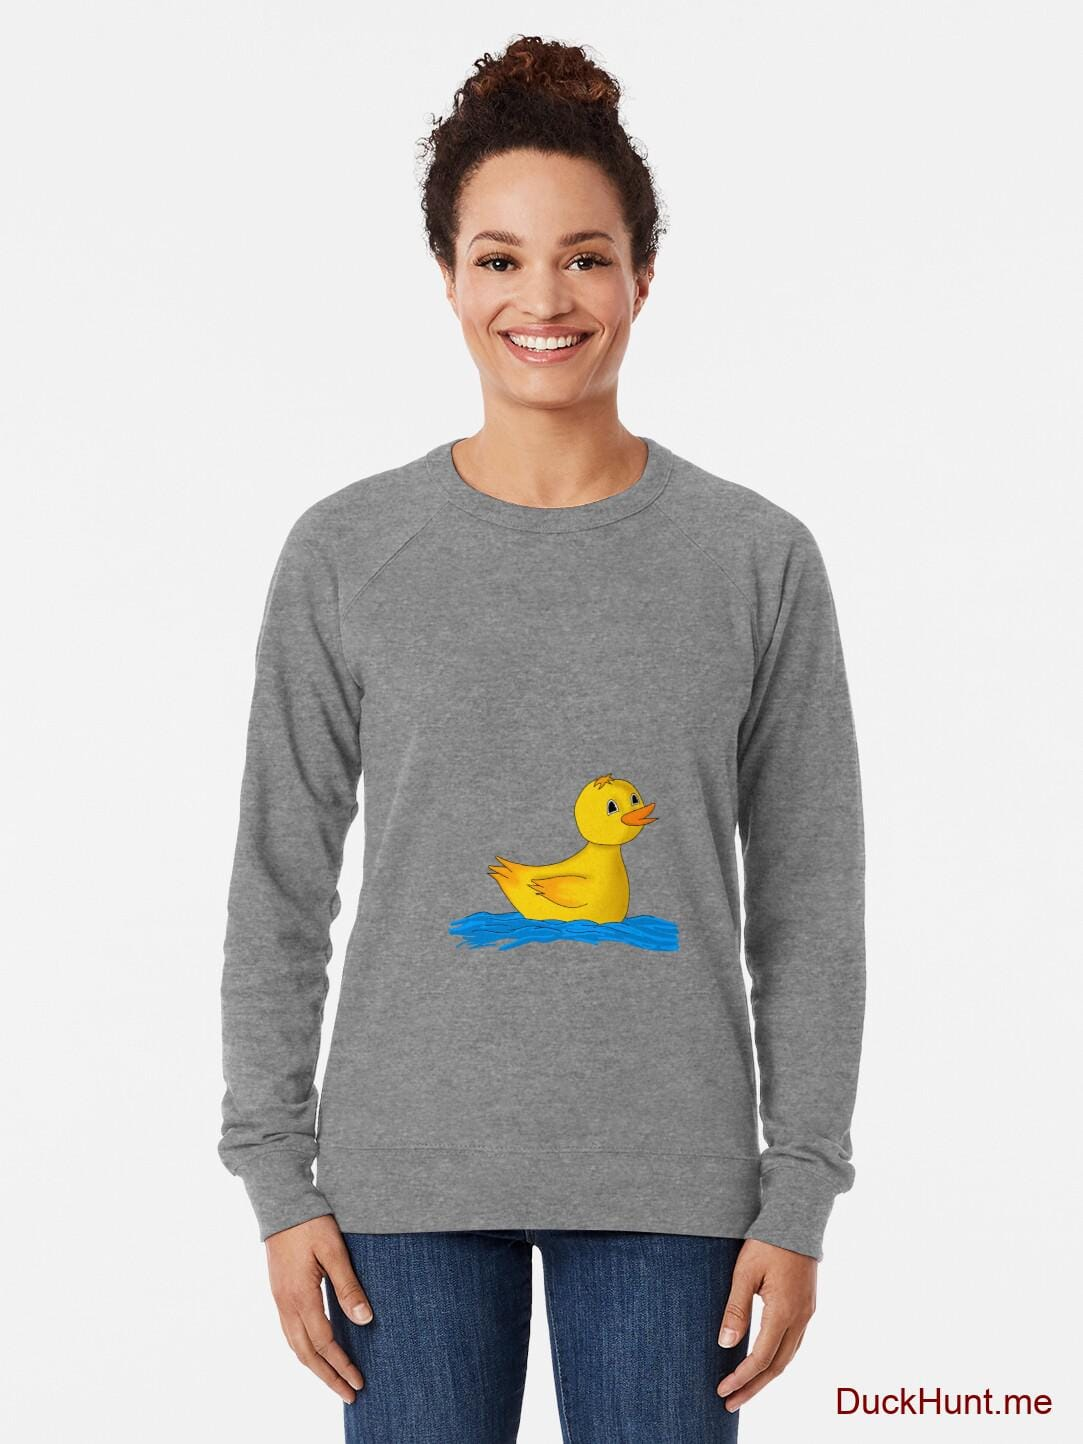 Plastic Duck Grey Lightweight Sweatshirt alternative image 1